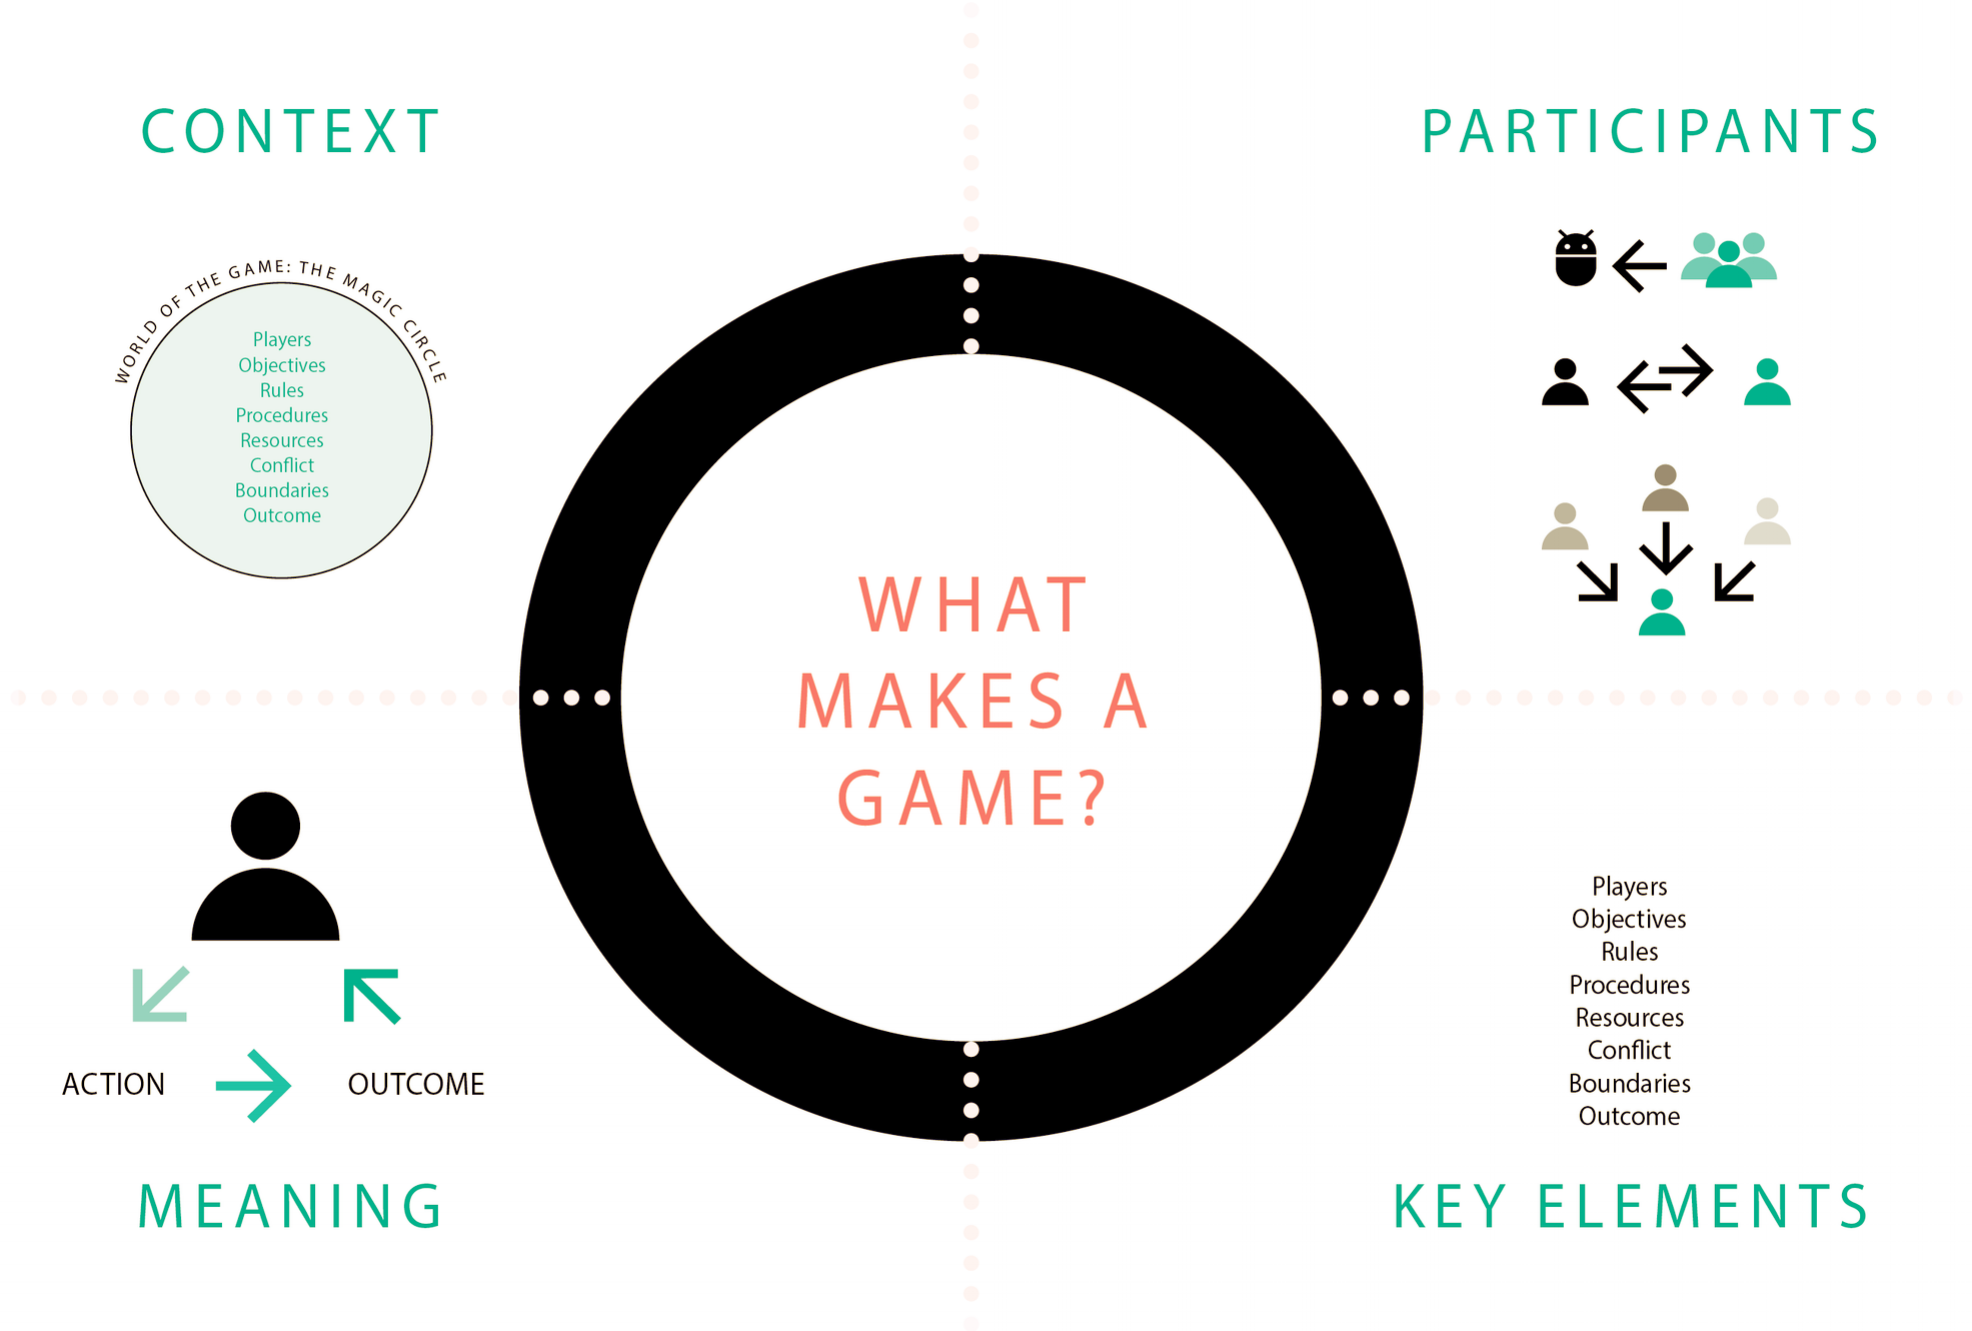 Elements of a Game